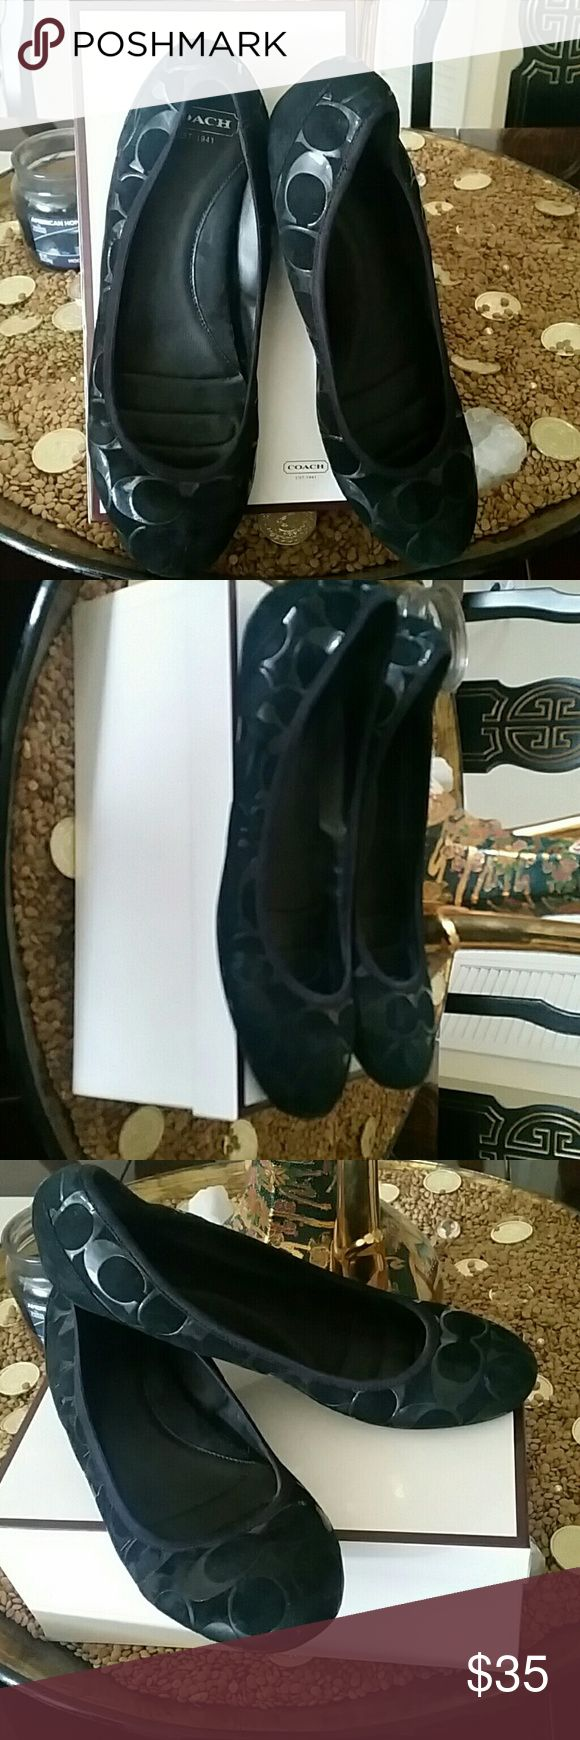 Aithentic COACH BALLERINA FLATS SHOES 8 COACH BALLERINA FLATS SHOES BLACK PATENT AND SUEDE. LOGO SIGNATURE. EXCELLENT CONDITION. INCLUDES COACH BOX AND FREE GIFT !!!!  SIZE 8 COACH Shoes Flats & Loafers